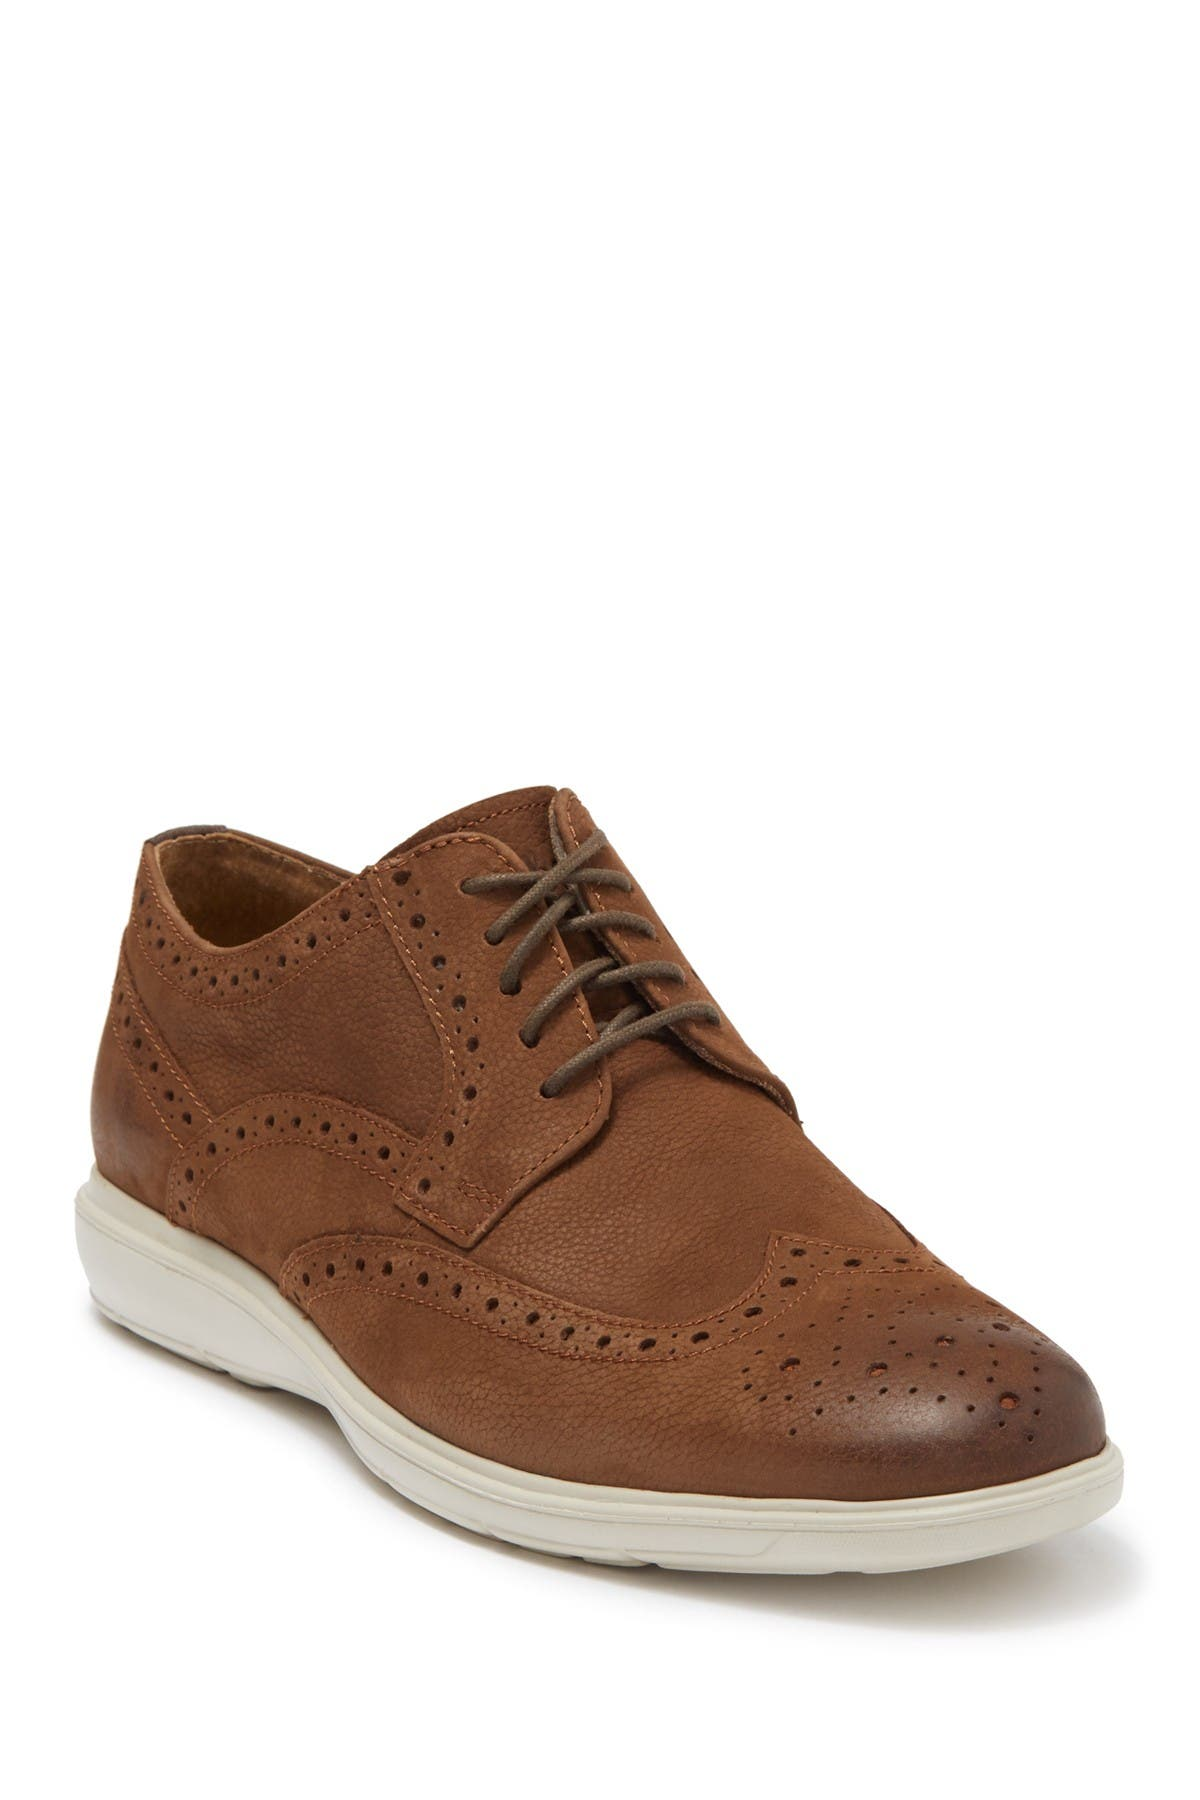 Image of Florsheim Indio Leather Wingtip Oxford